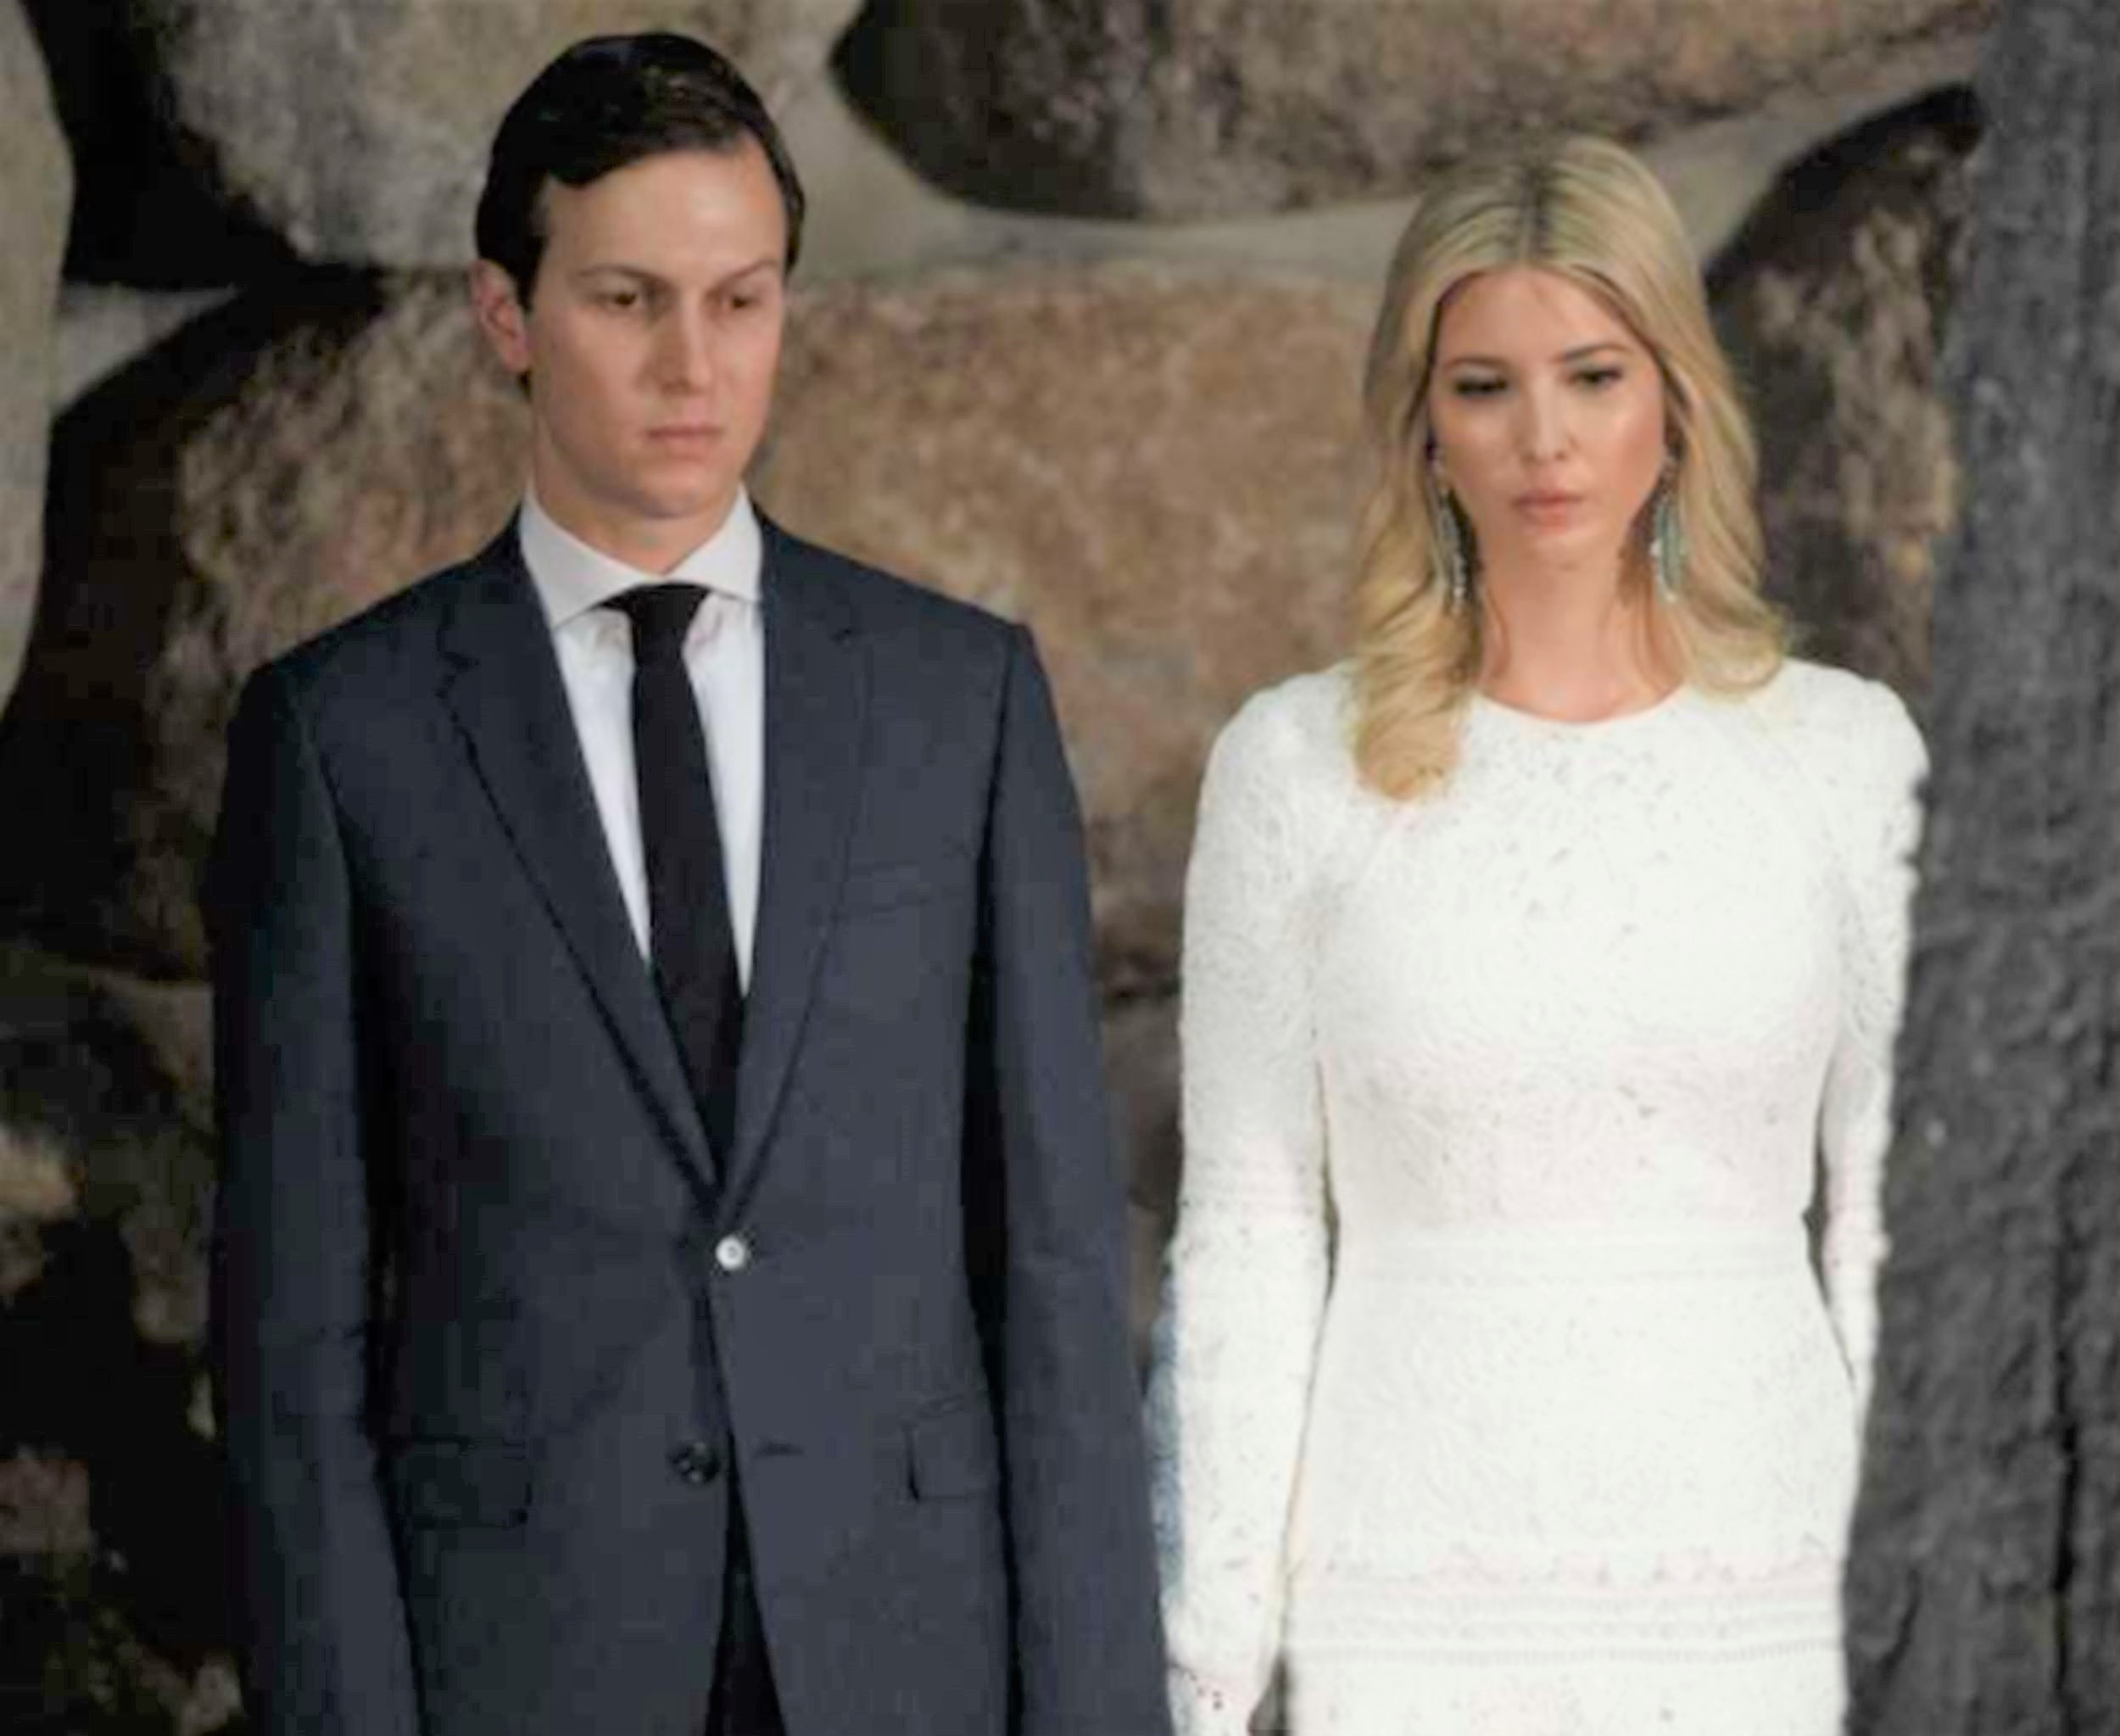 White House senior adviser Jared Kushner, left, and his wife Ivanka Trump watch during a visit by President Donald Trump to Yad Vashem to honor the victims of the Holocaust in Jerusalem. AP WIREPHOTO